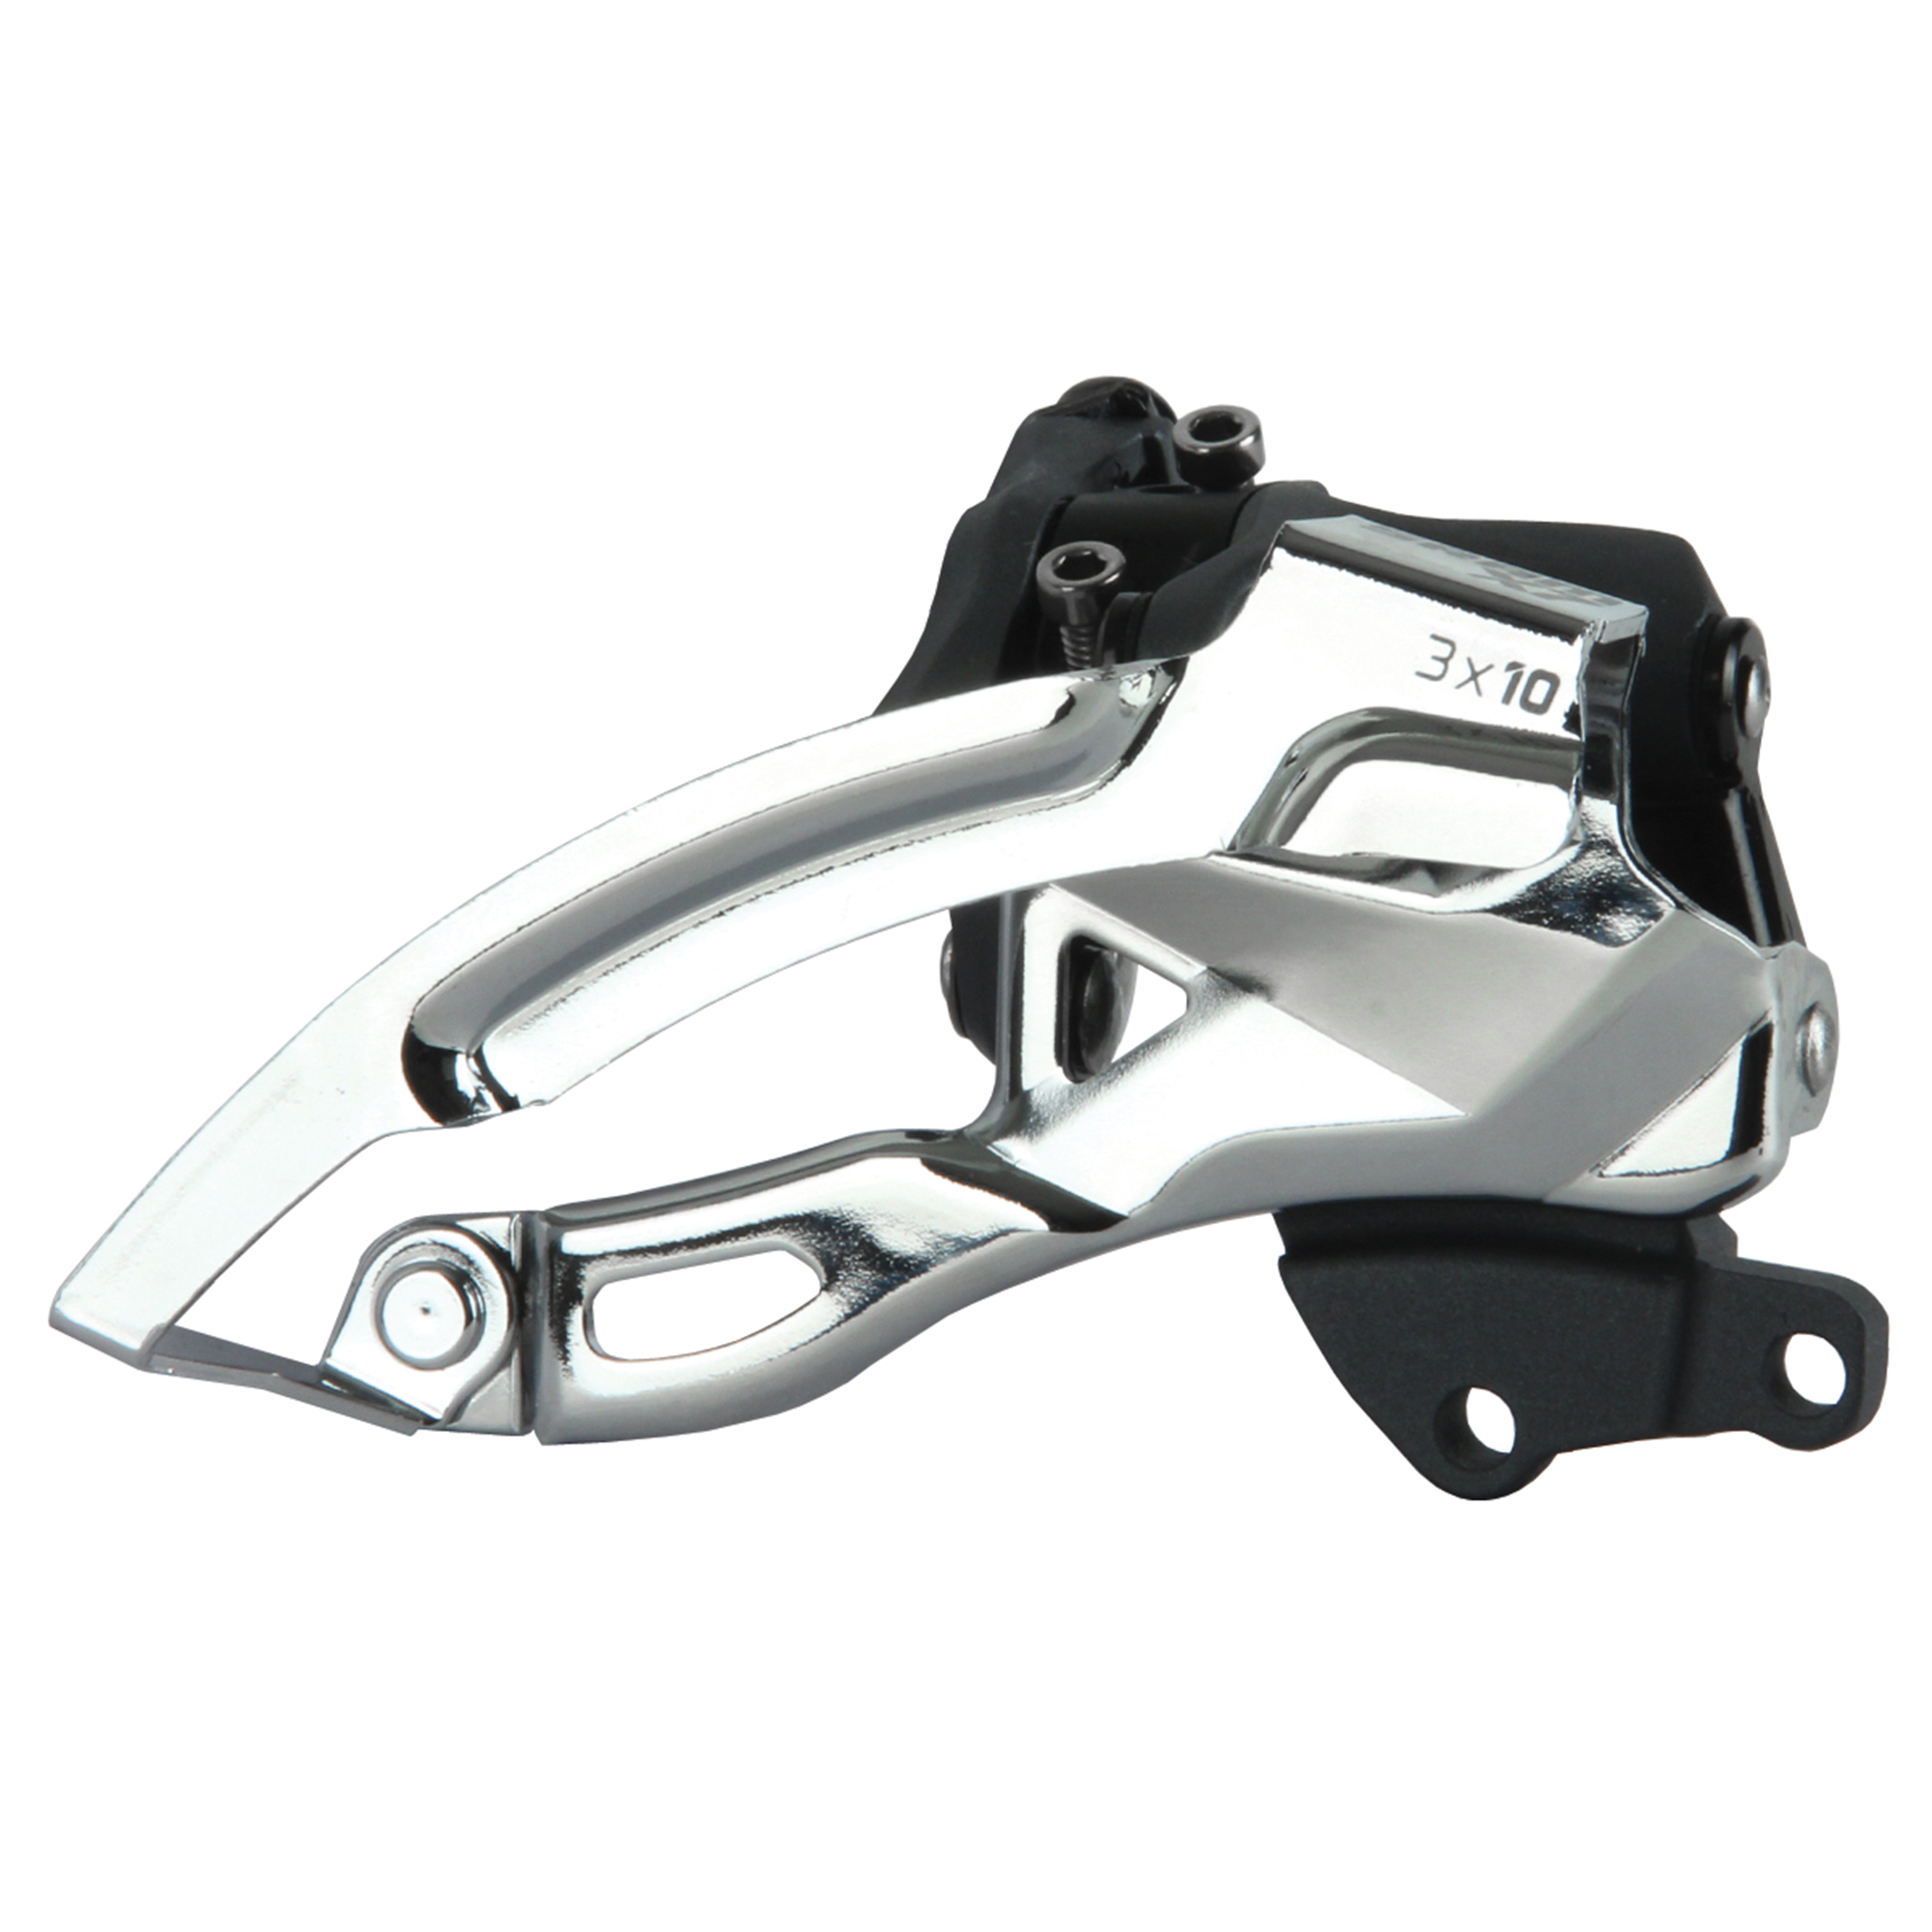 Sram, X7, Front Derailleur, 3x10sp, Low direct mount S3, 44T Dual pull